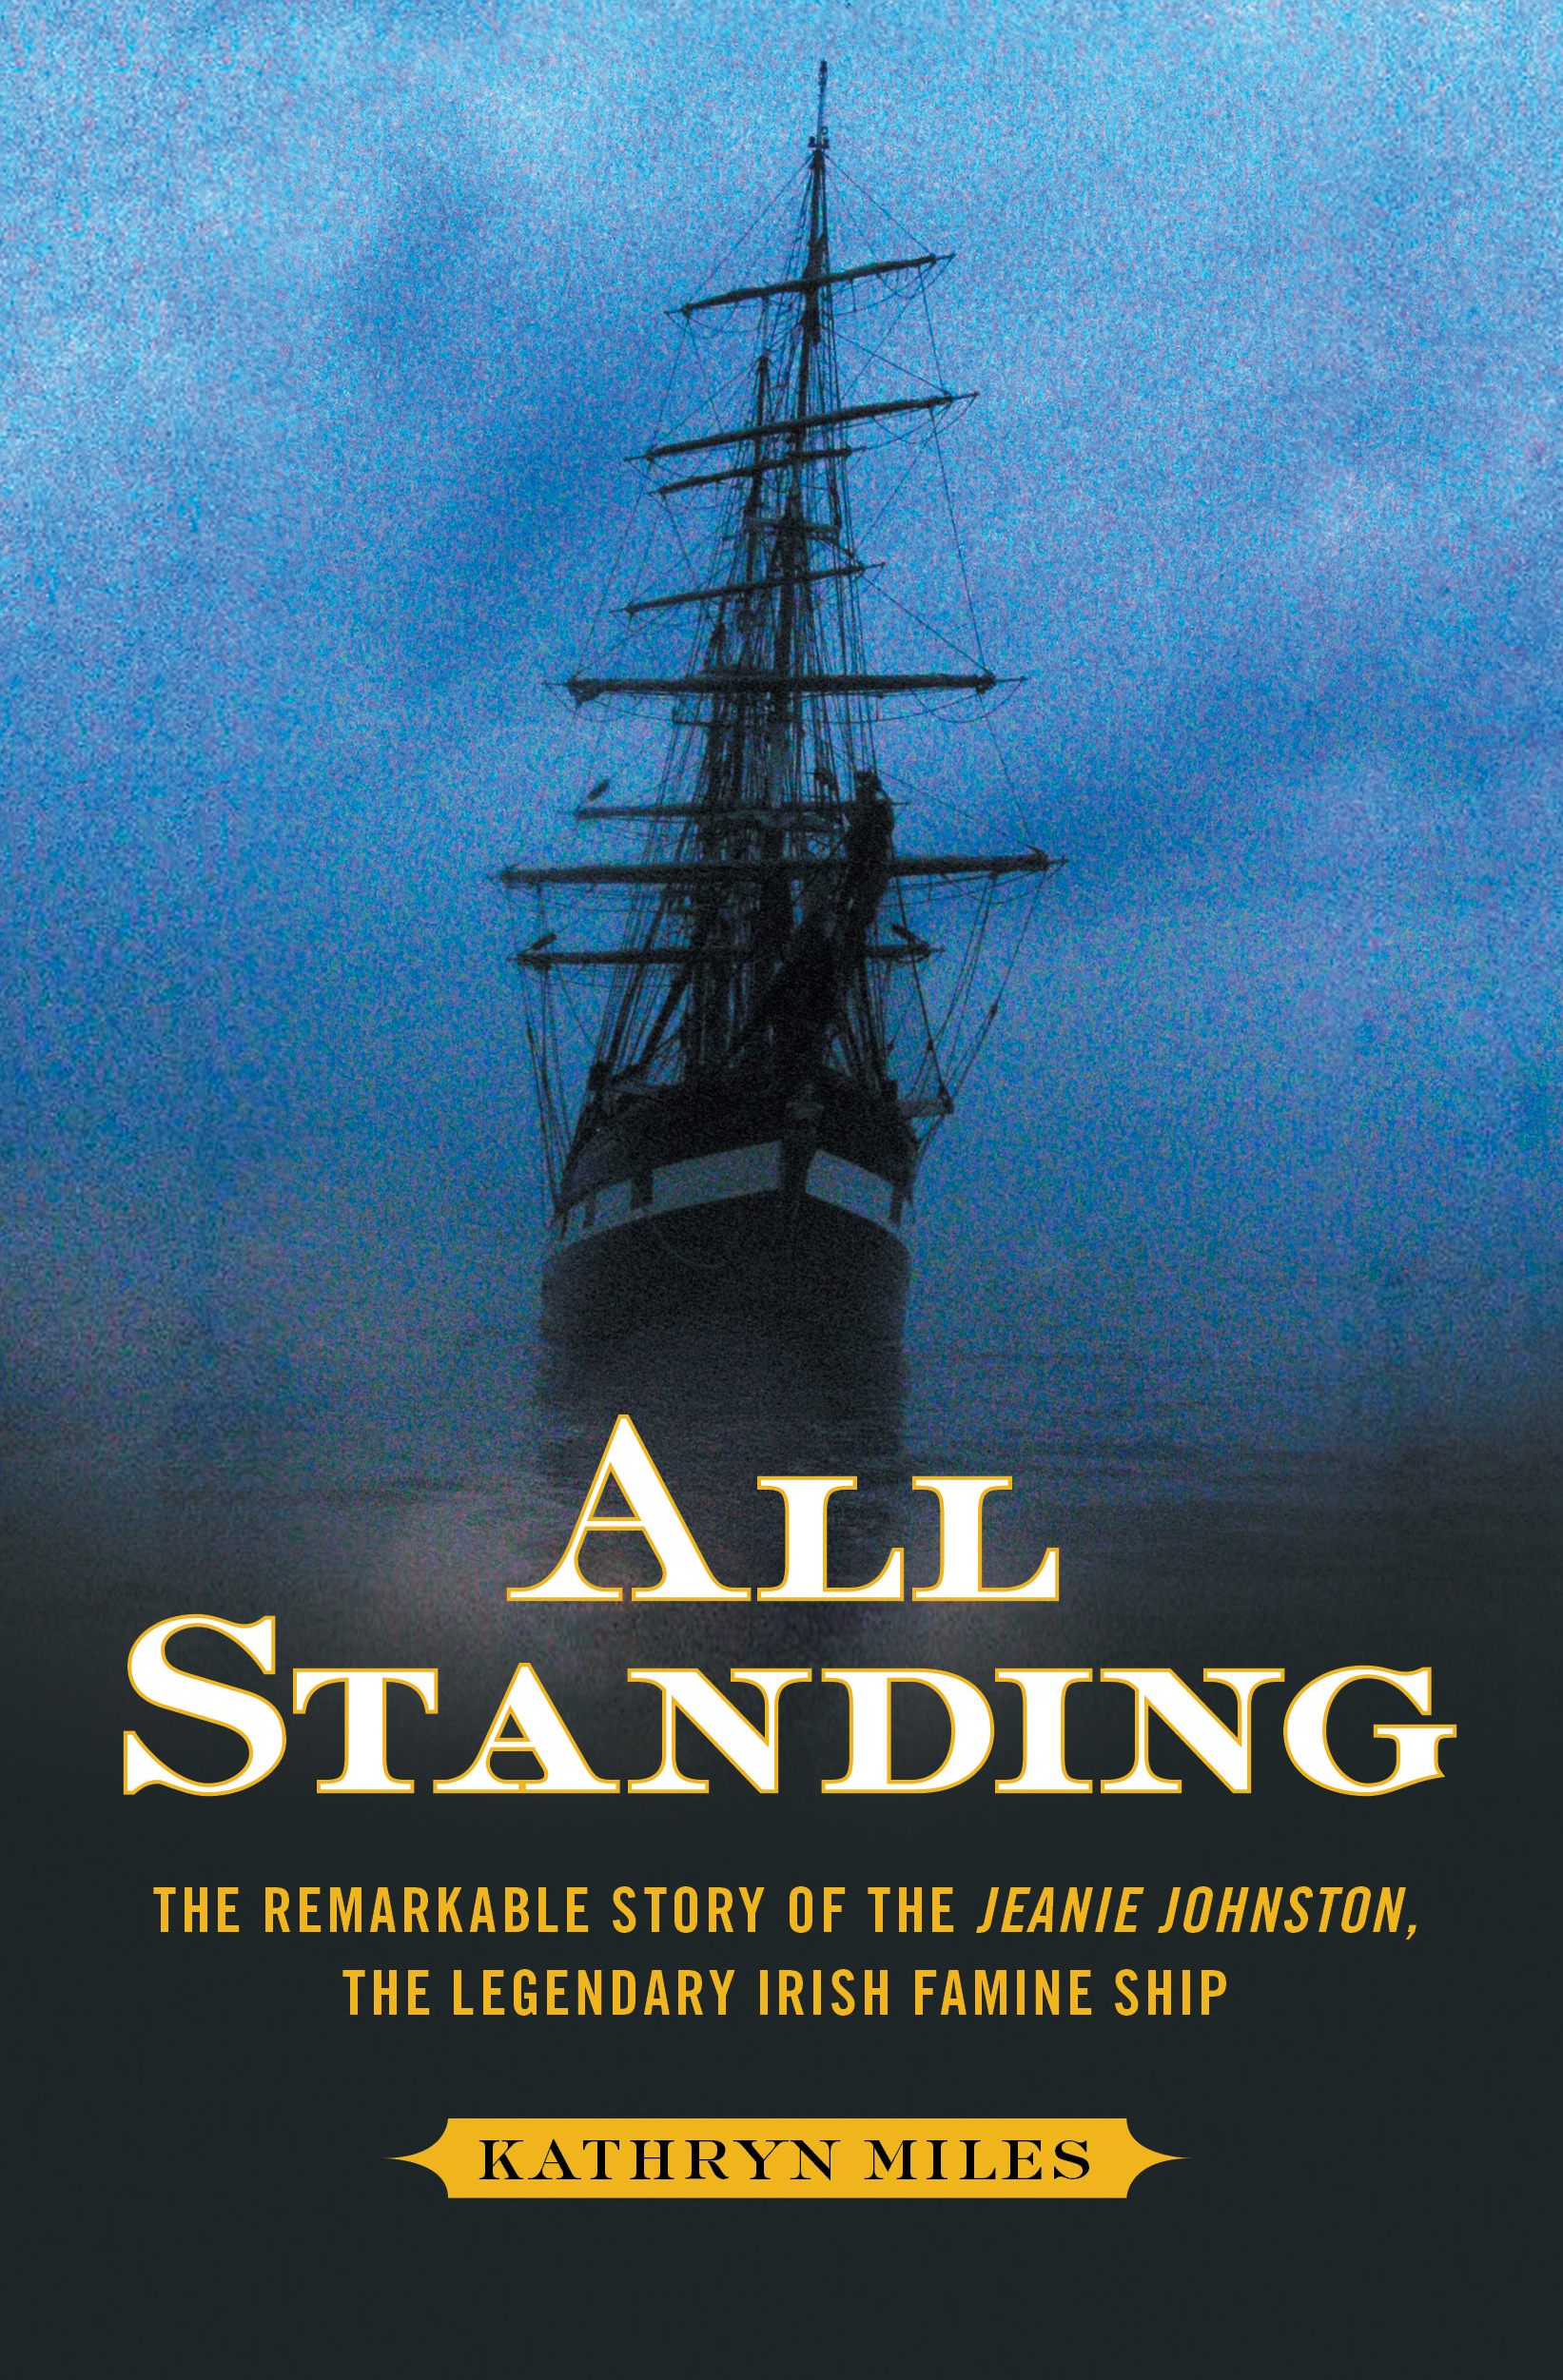 All-standing-9781451610154_hr